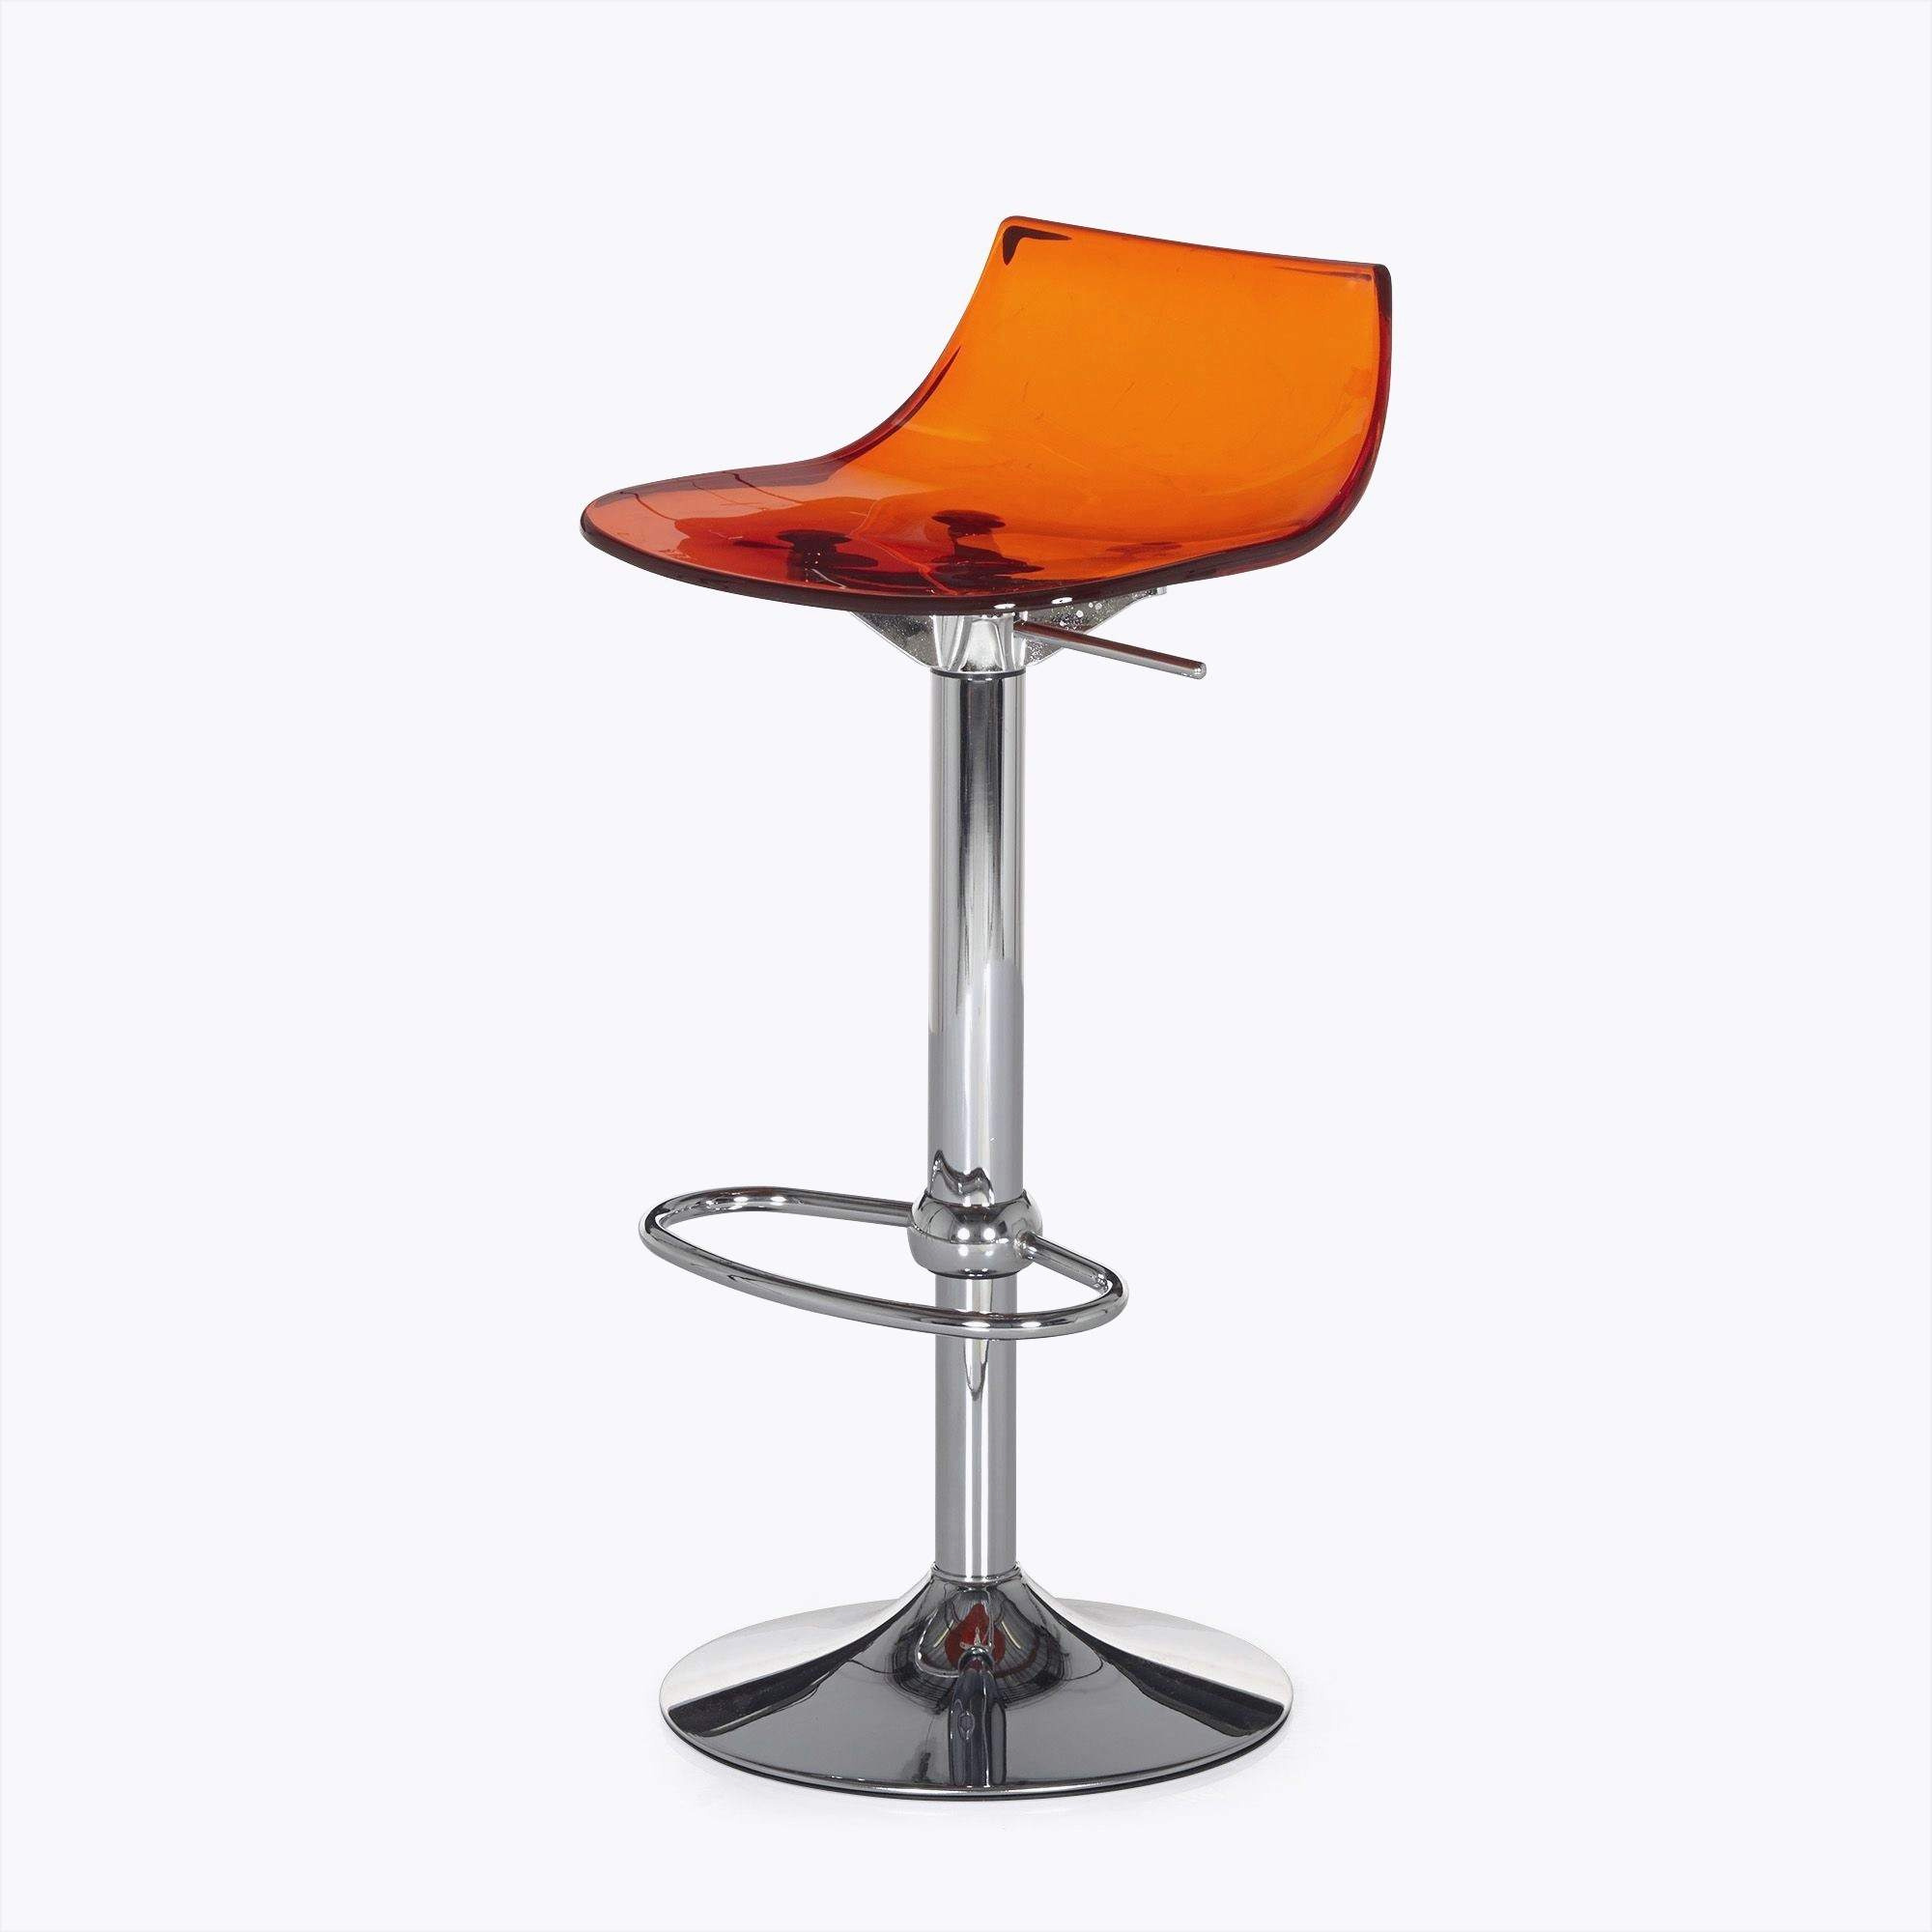 tabouret bar cdiscount source dinspiration chaise 3 pieds chaise assise 60 cm chaise bois chaises discount 0d of tabouret bar cdiscount